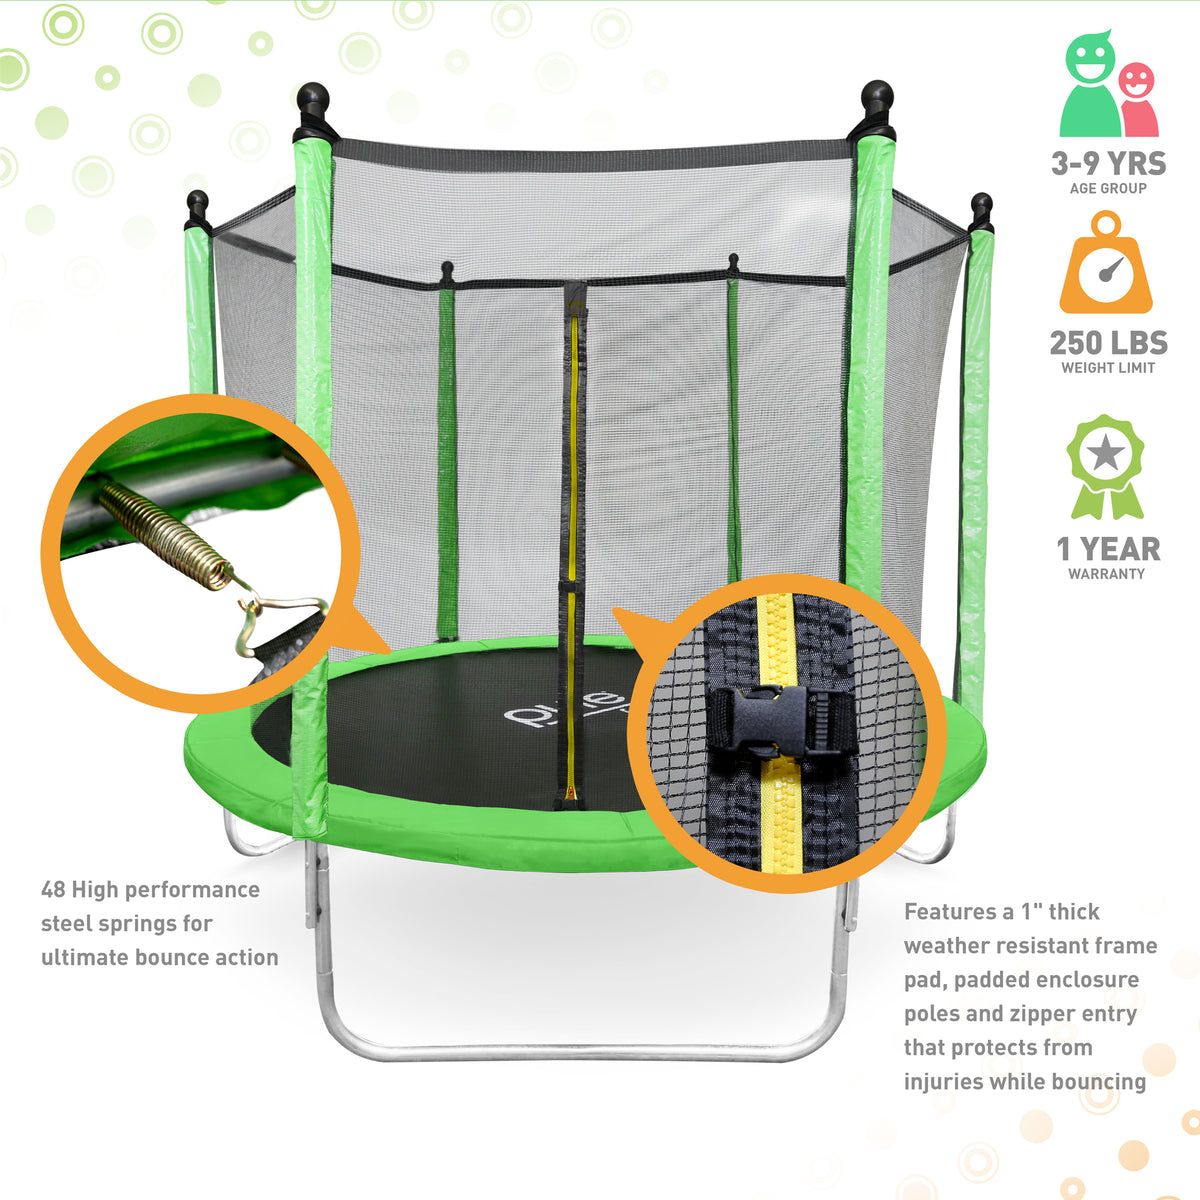 Dura Bounce Outdoor Trampoline With Enclosure 8 Foot